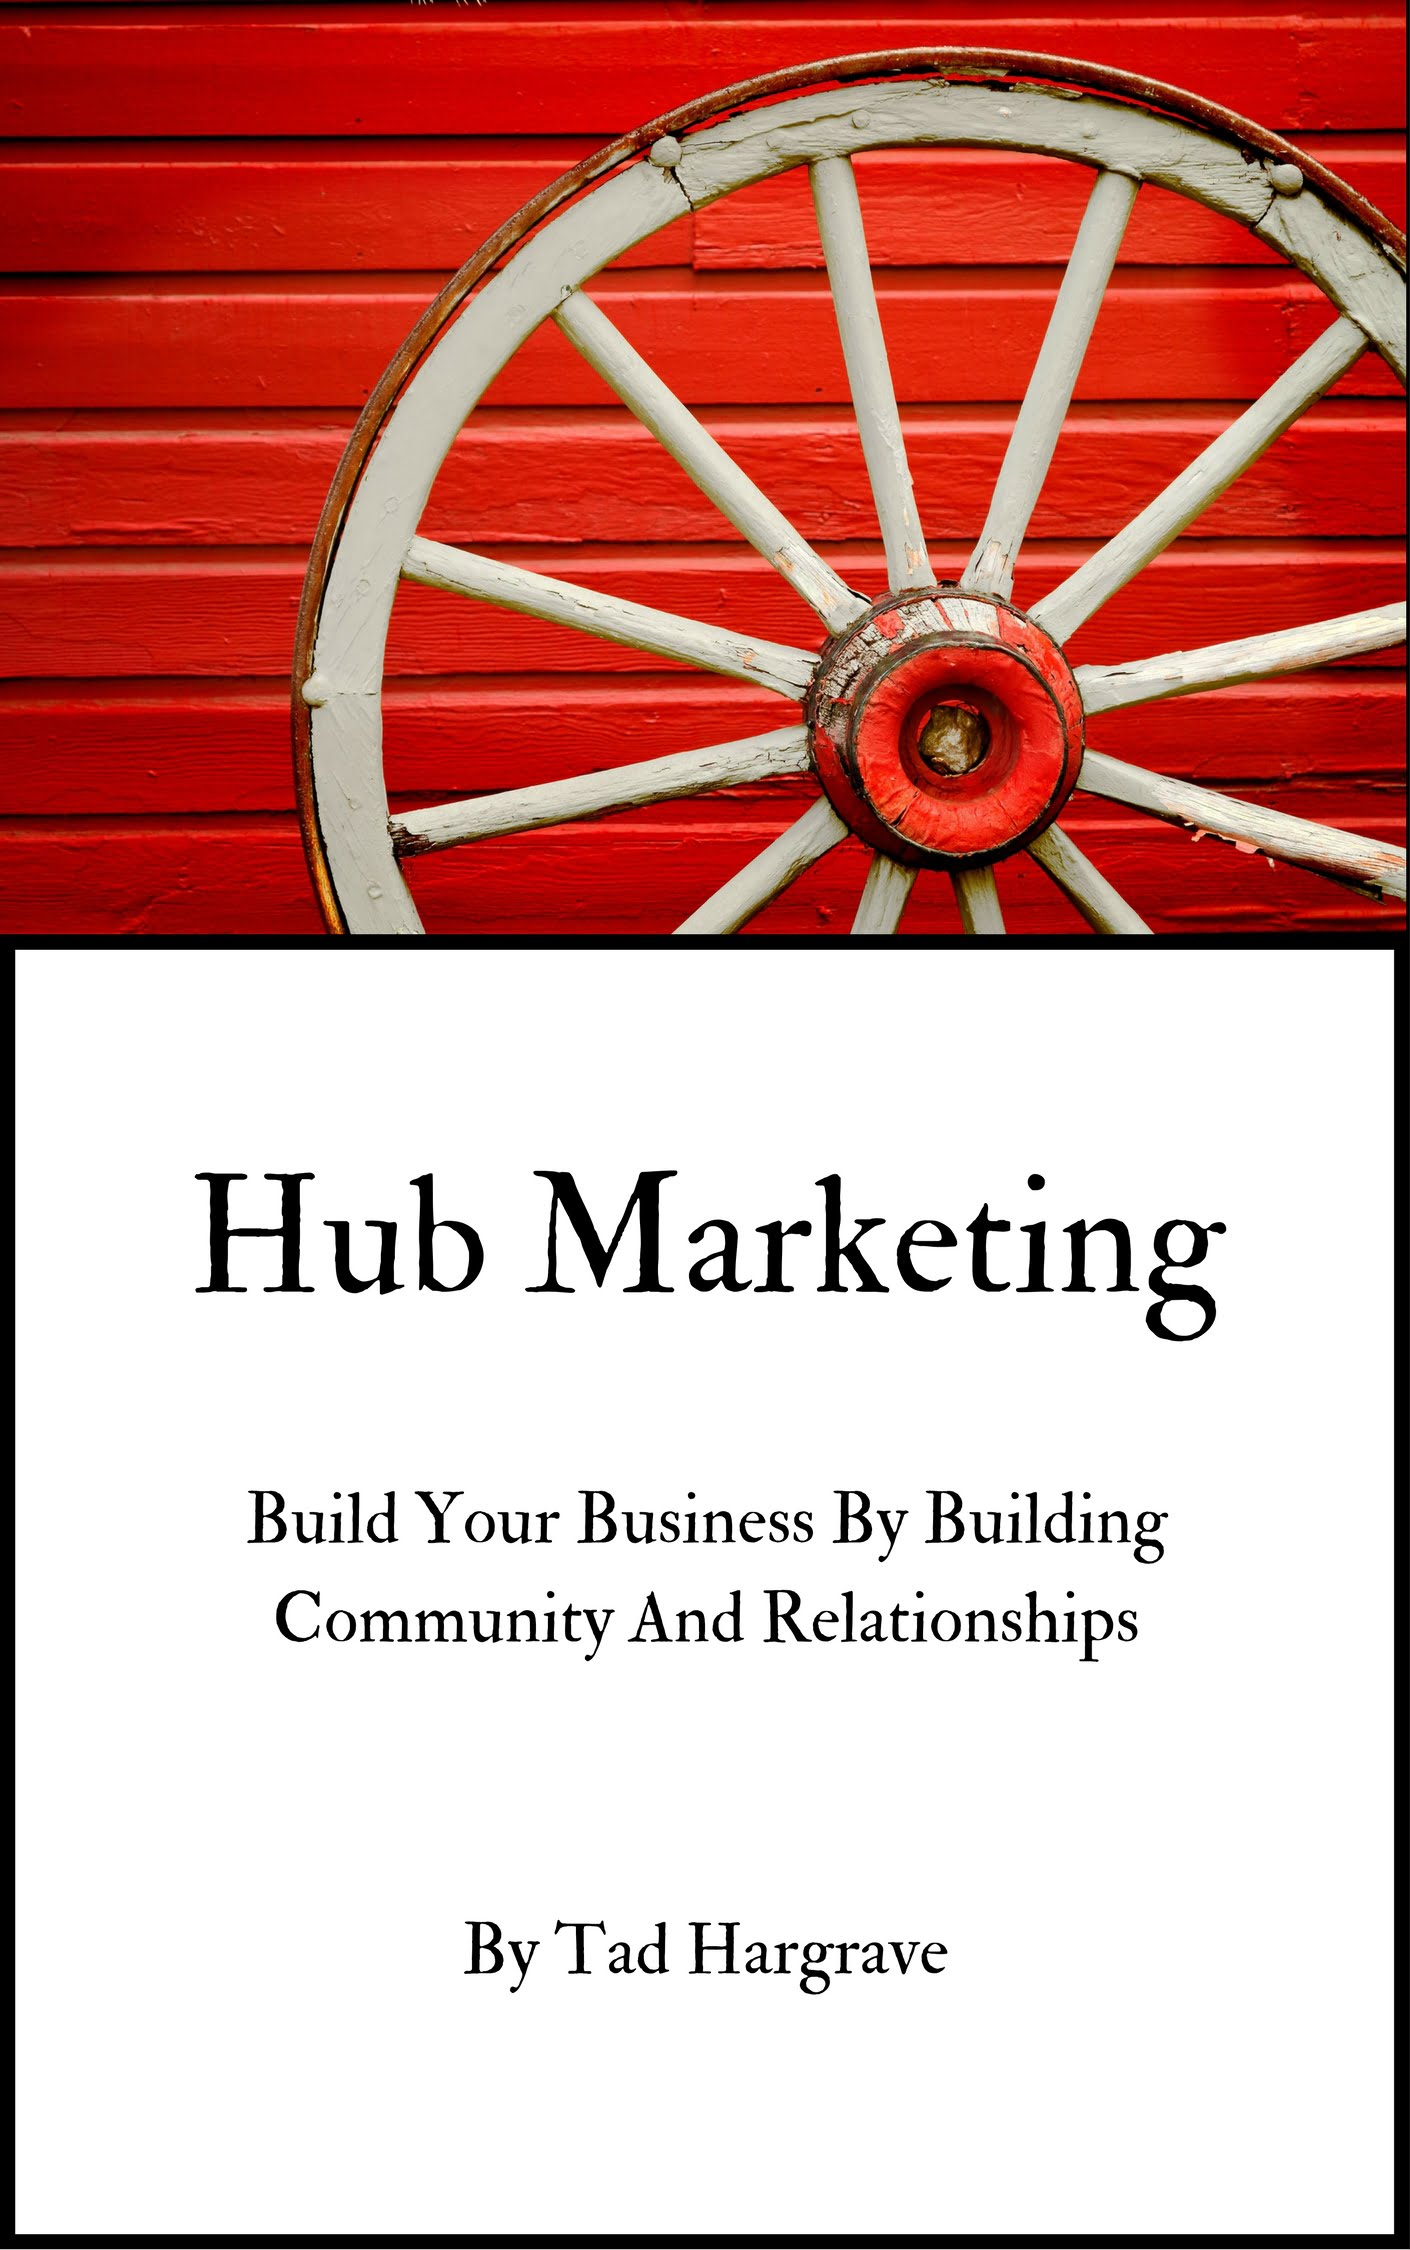 Hub Marketing